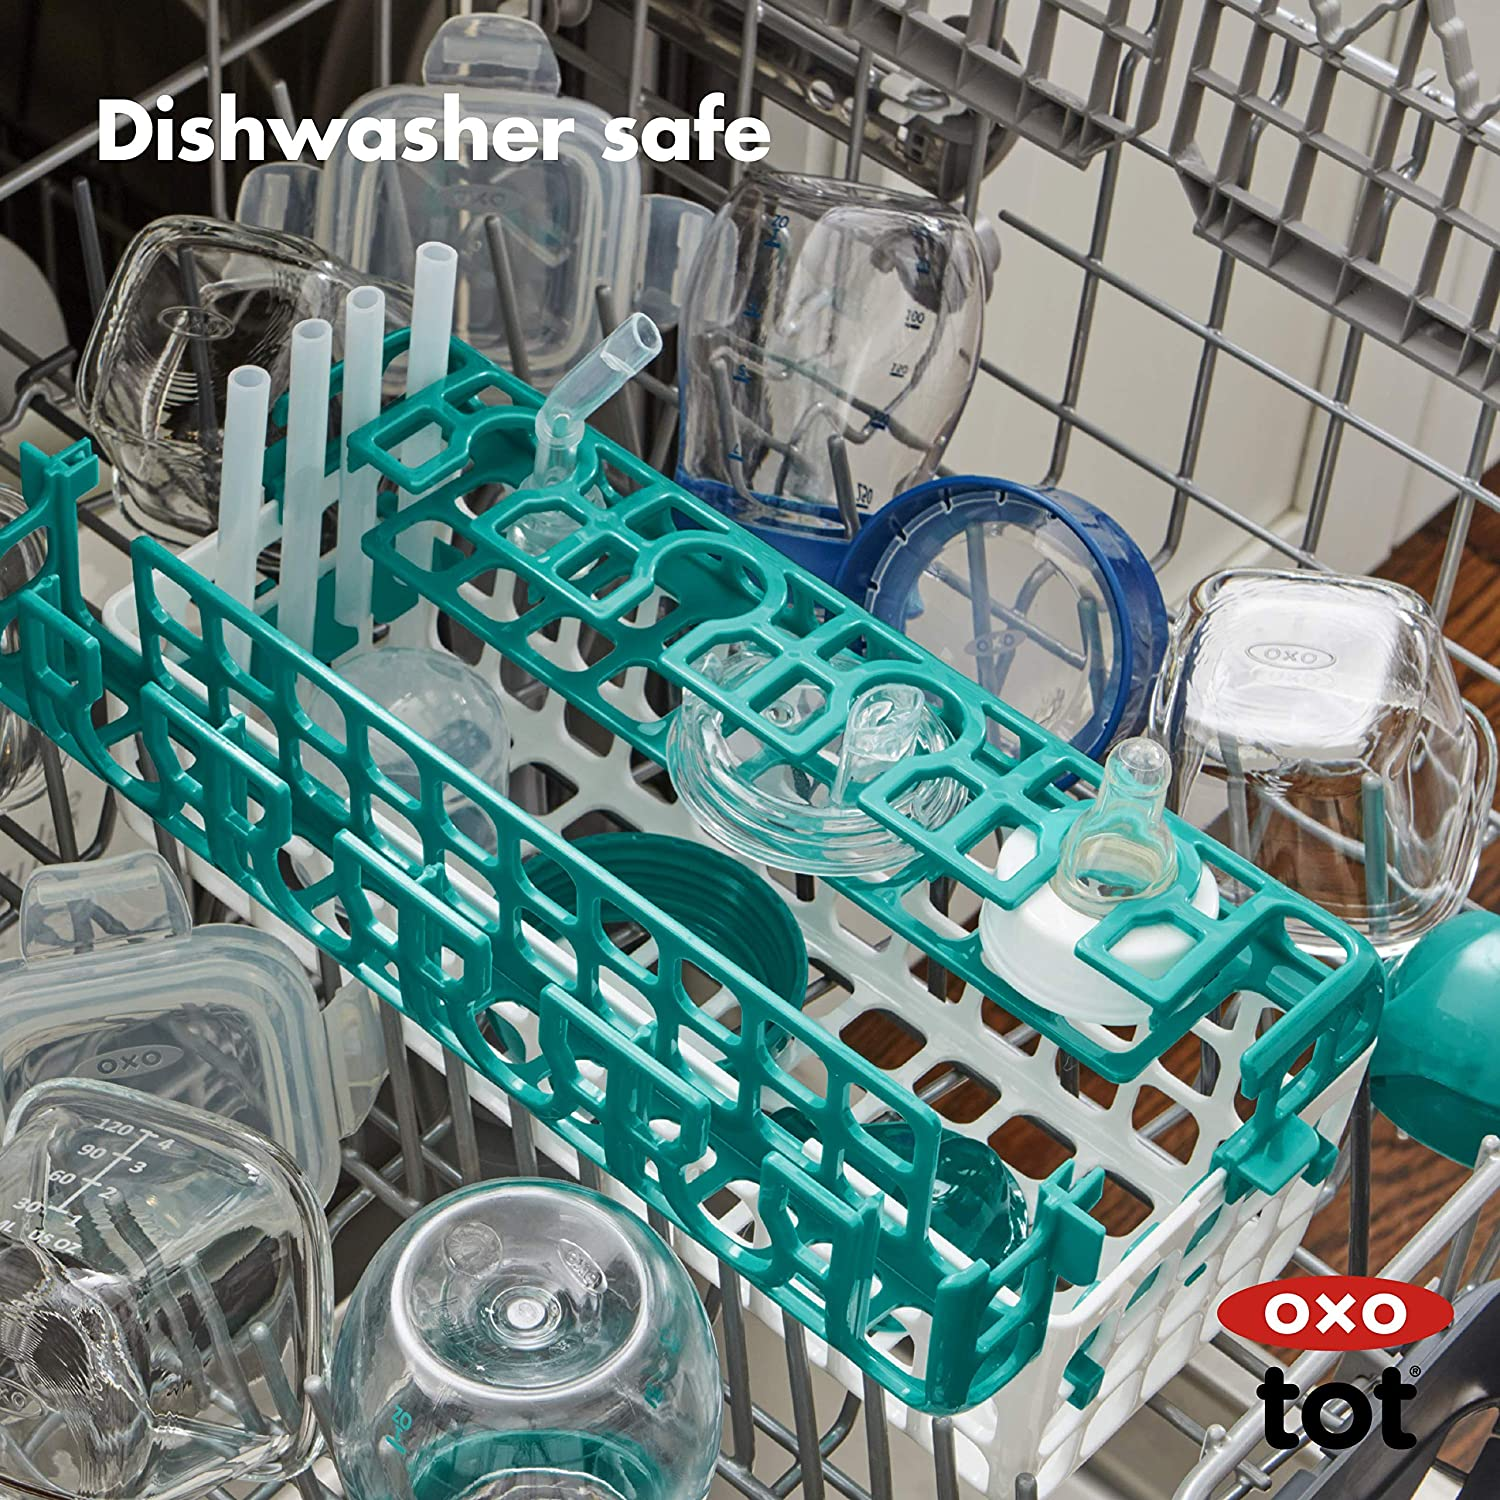 OXO Tot Dishwasher Basket for Bottle Parts & Accessories, Teal : Baby